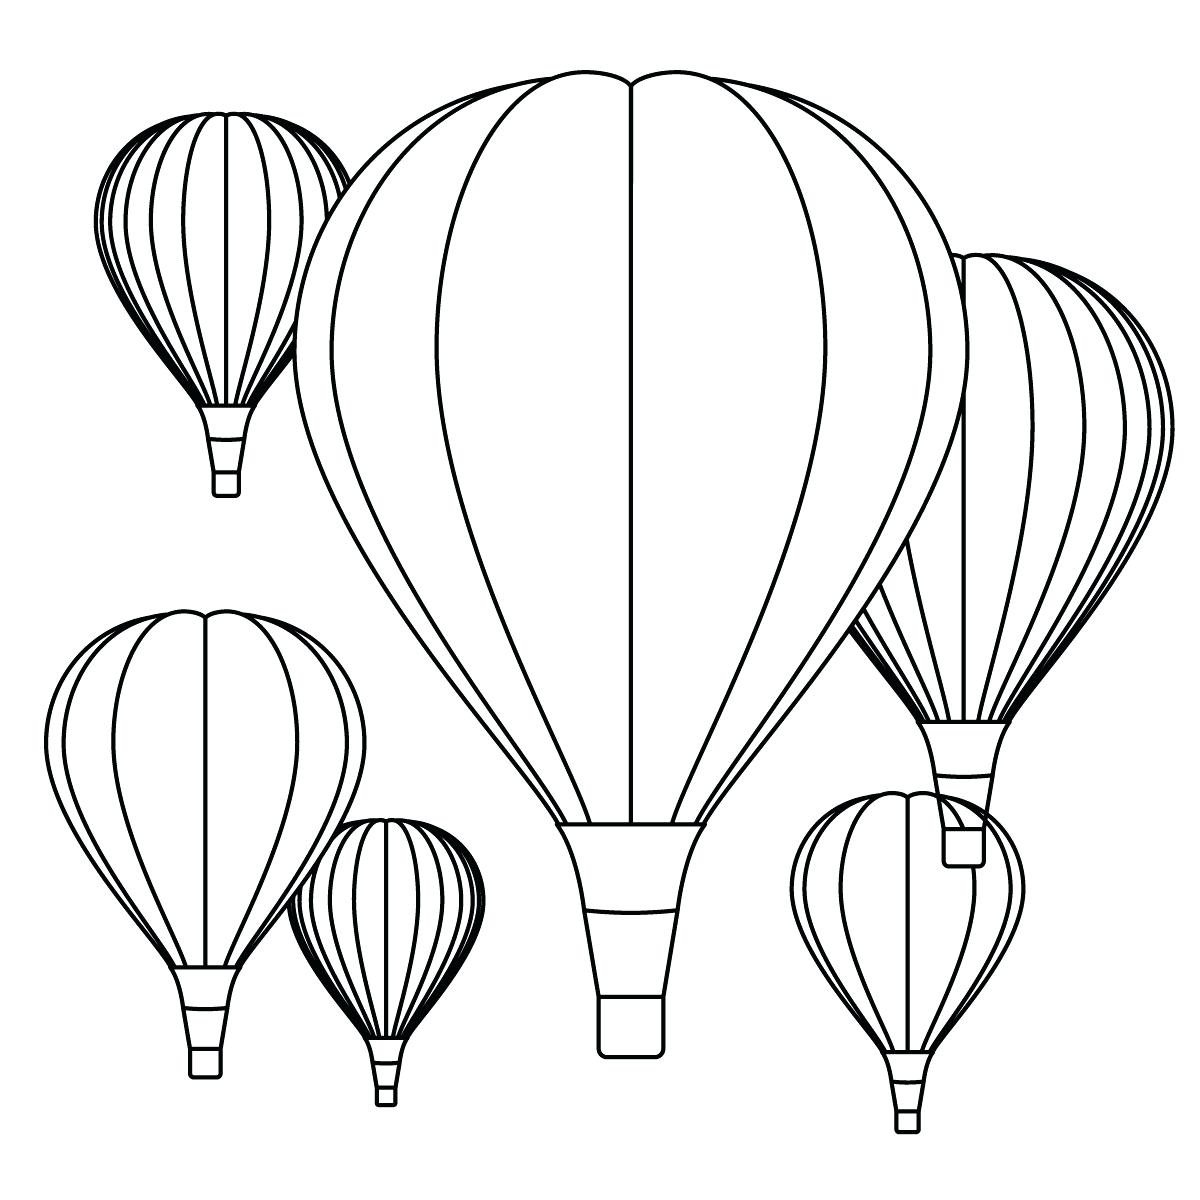 photograph regarding Balloon Template Printable titled Warm Air Balloon Drawing Template at  Cost-free